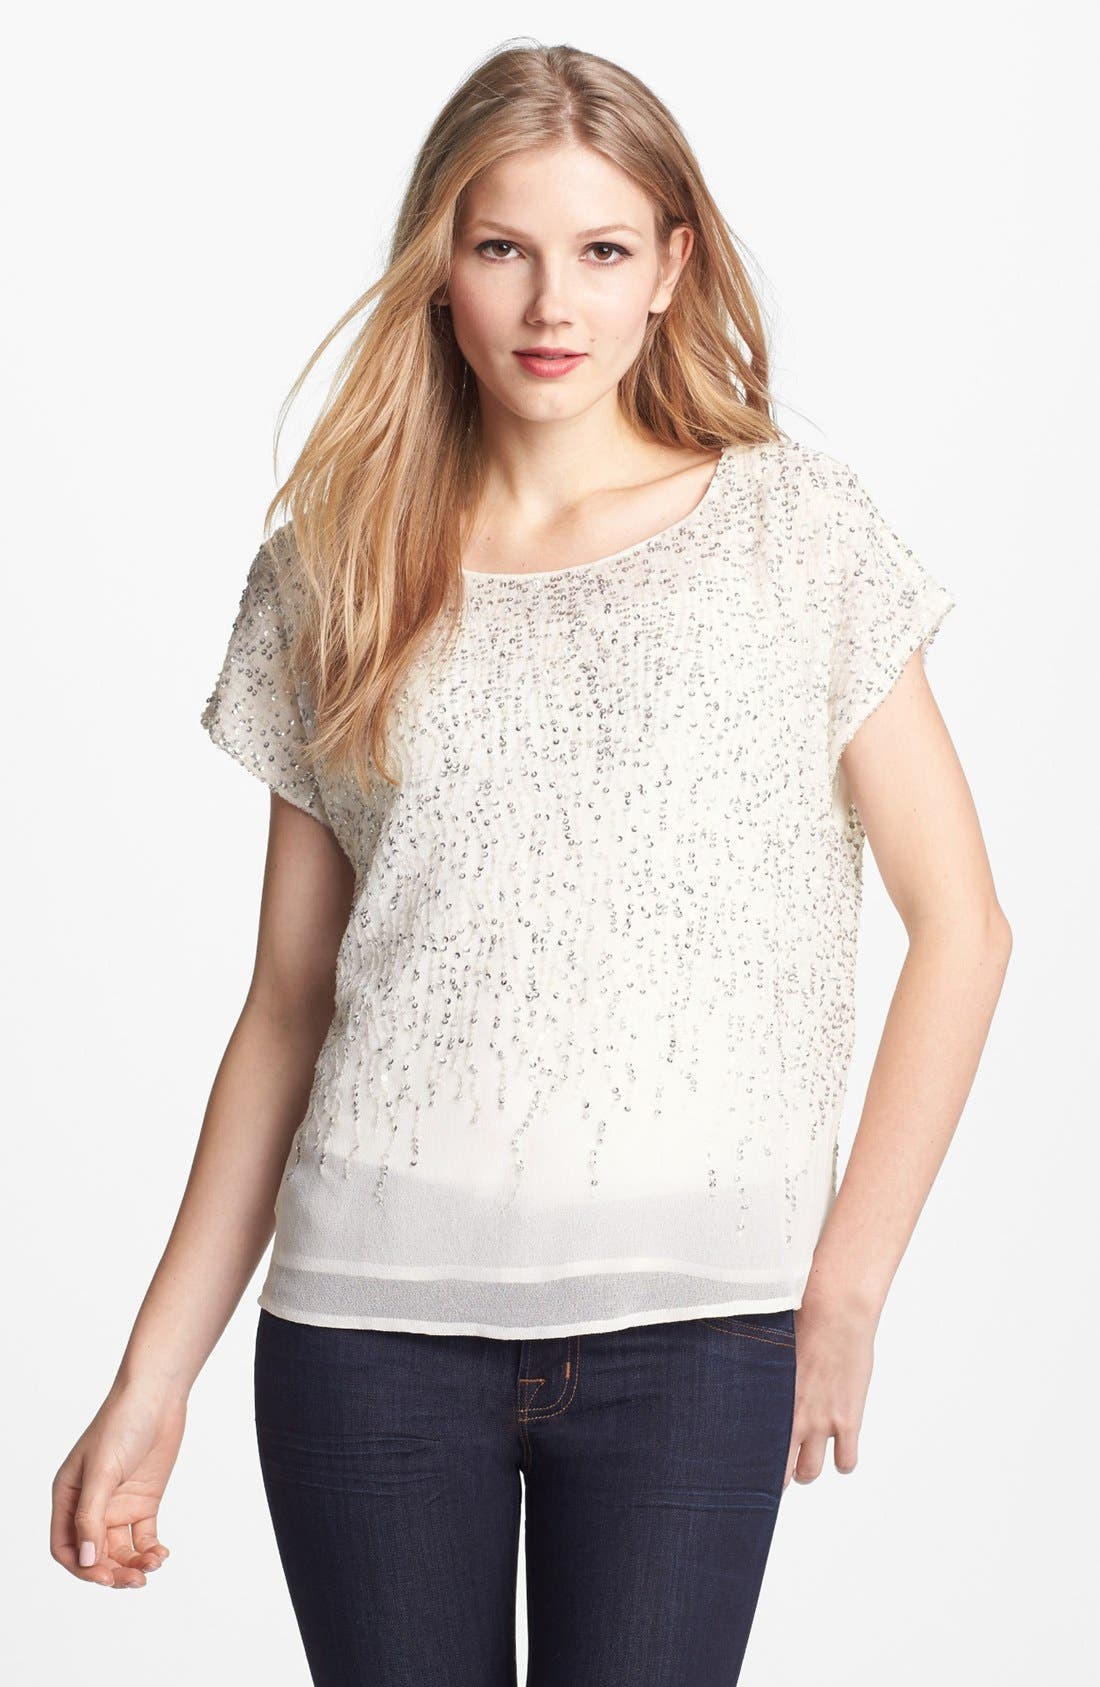 Alternate Image 1 Selected - Vince Camuto 'Flower Fields' Short Sleeve Sequin Blouse